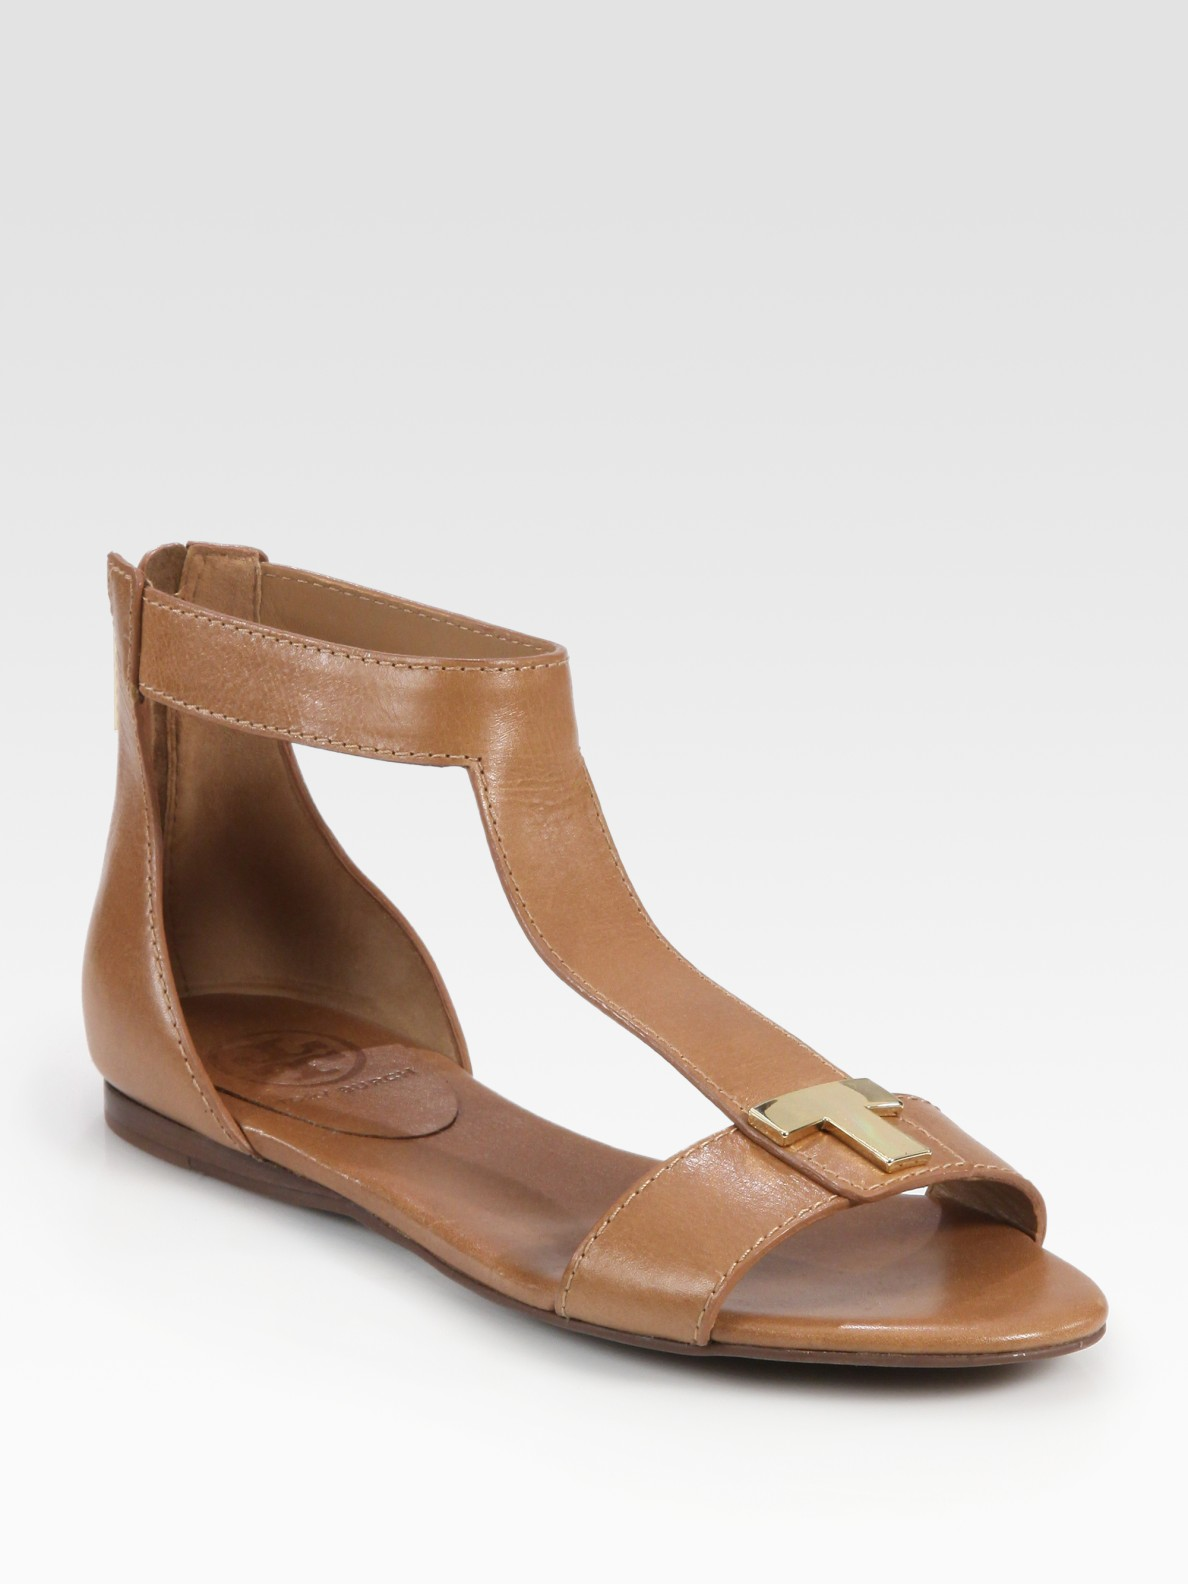 4a71e160e606 Lyst - Tory Burch Casey Leather T-strap Zip Sandals in Brown